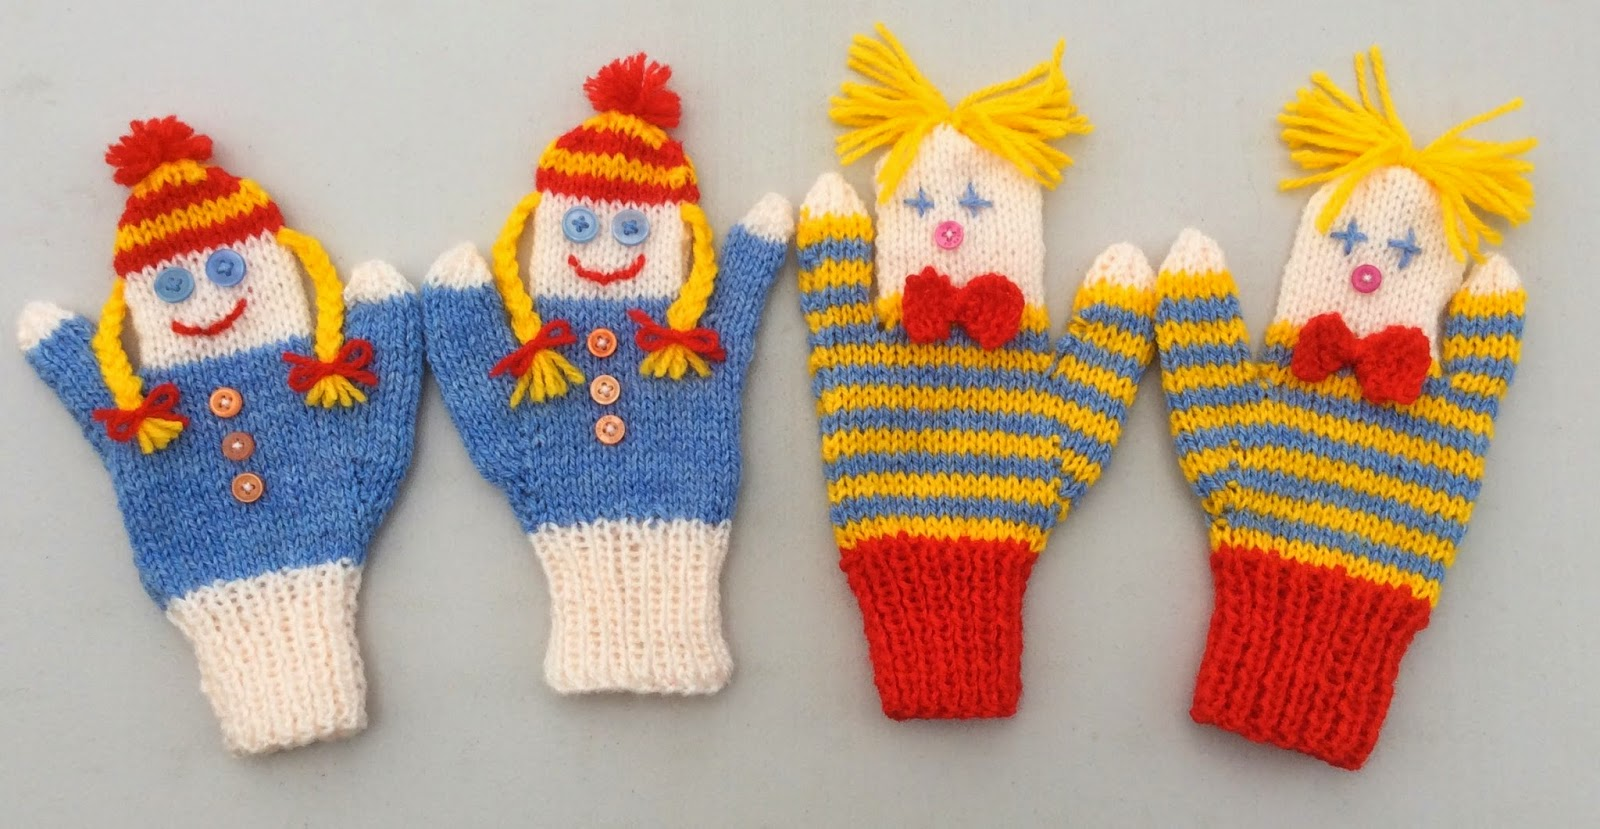 Knitting Pattern For Puppet Mittens : bitstobuy: More Mitten knitting patterns!